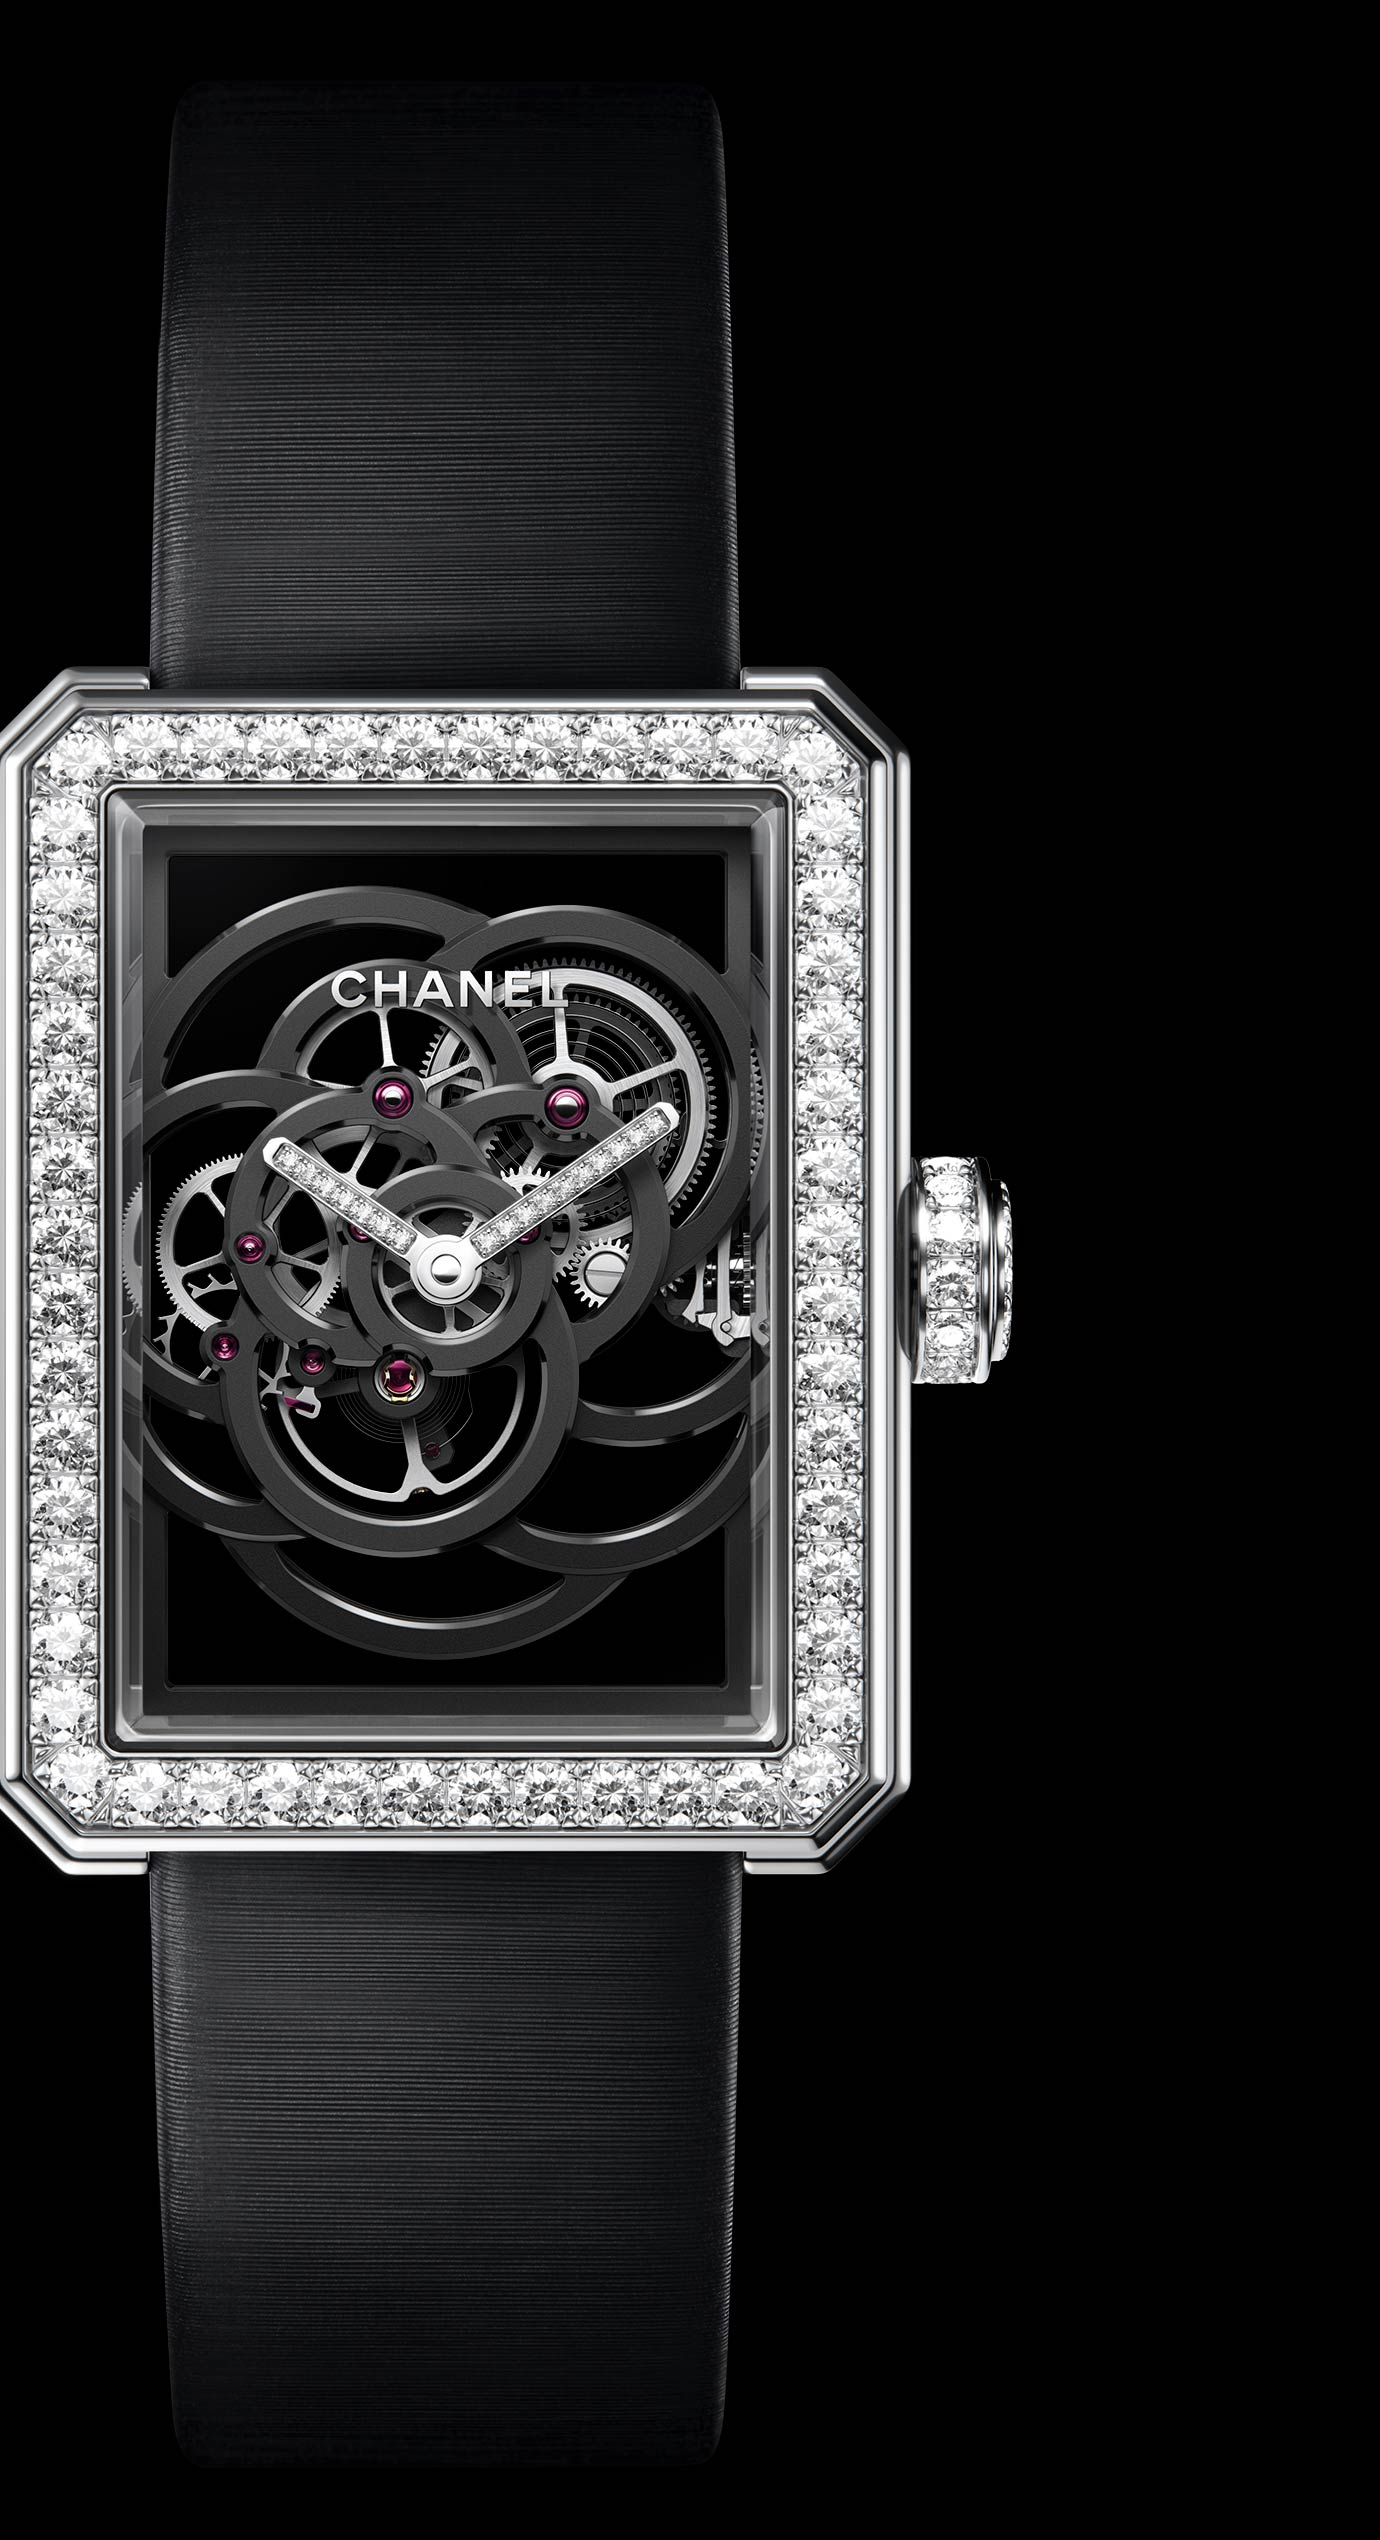 Première Camélia Skeleton watch in white gold, case, bezel and crown set with brilliant-cut diamonds - Enlarged view